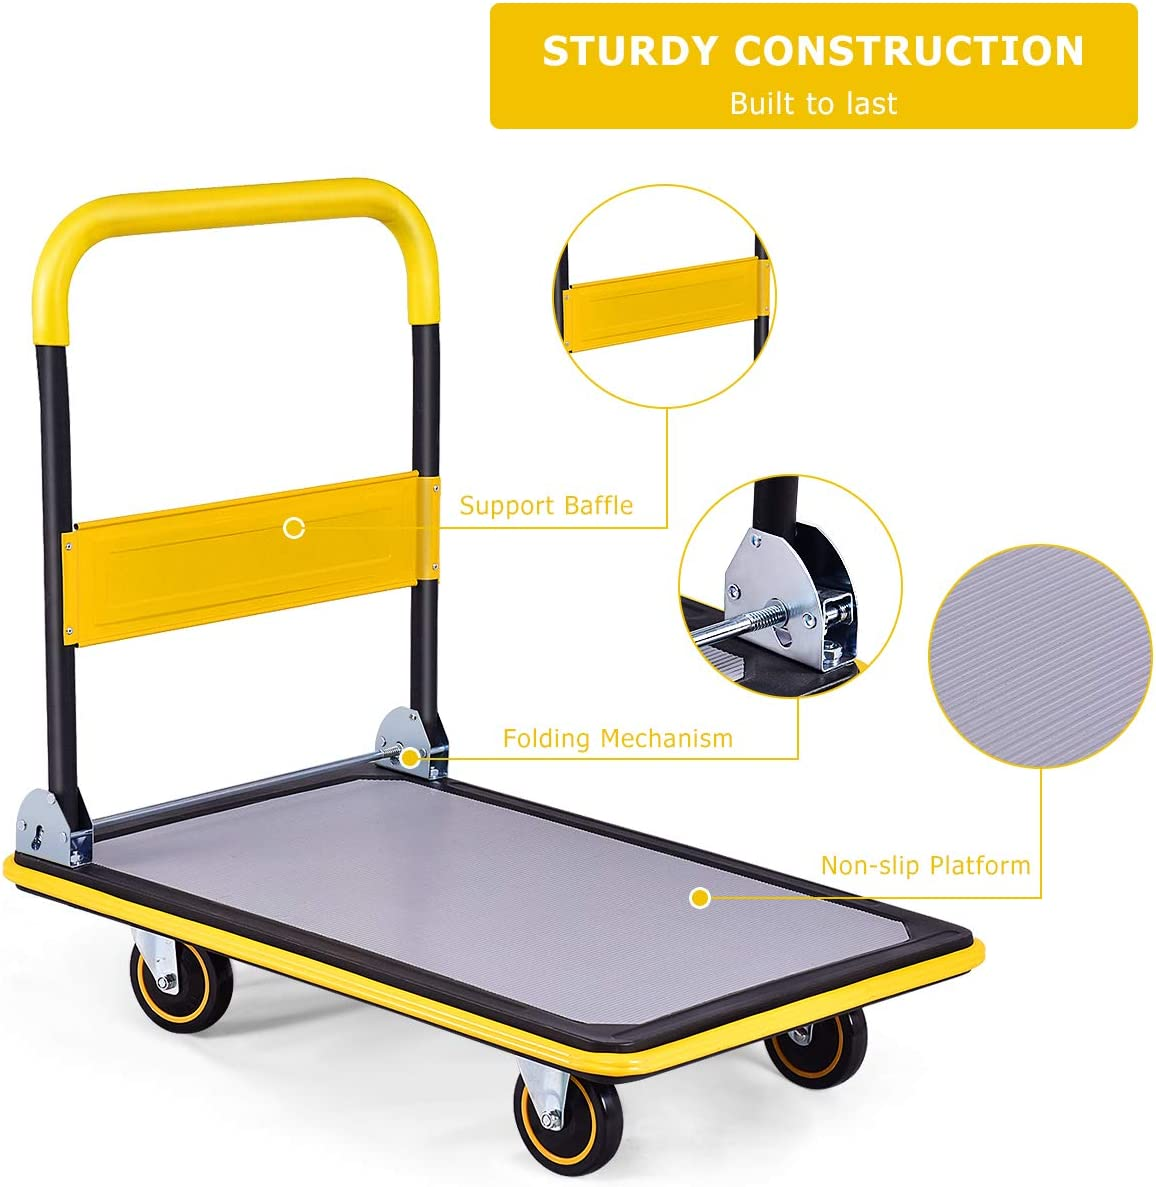 660Lbs Load-Bearing Capacity, Yellow Safstar/Folding/Push/Cart/Dolly,/Rolling/Platform/Cart/for/Garage/Warehouse,/Portable/Flatbed/Cart/with/Non-Slip/Swivel/Casters